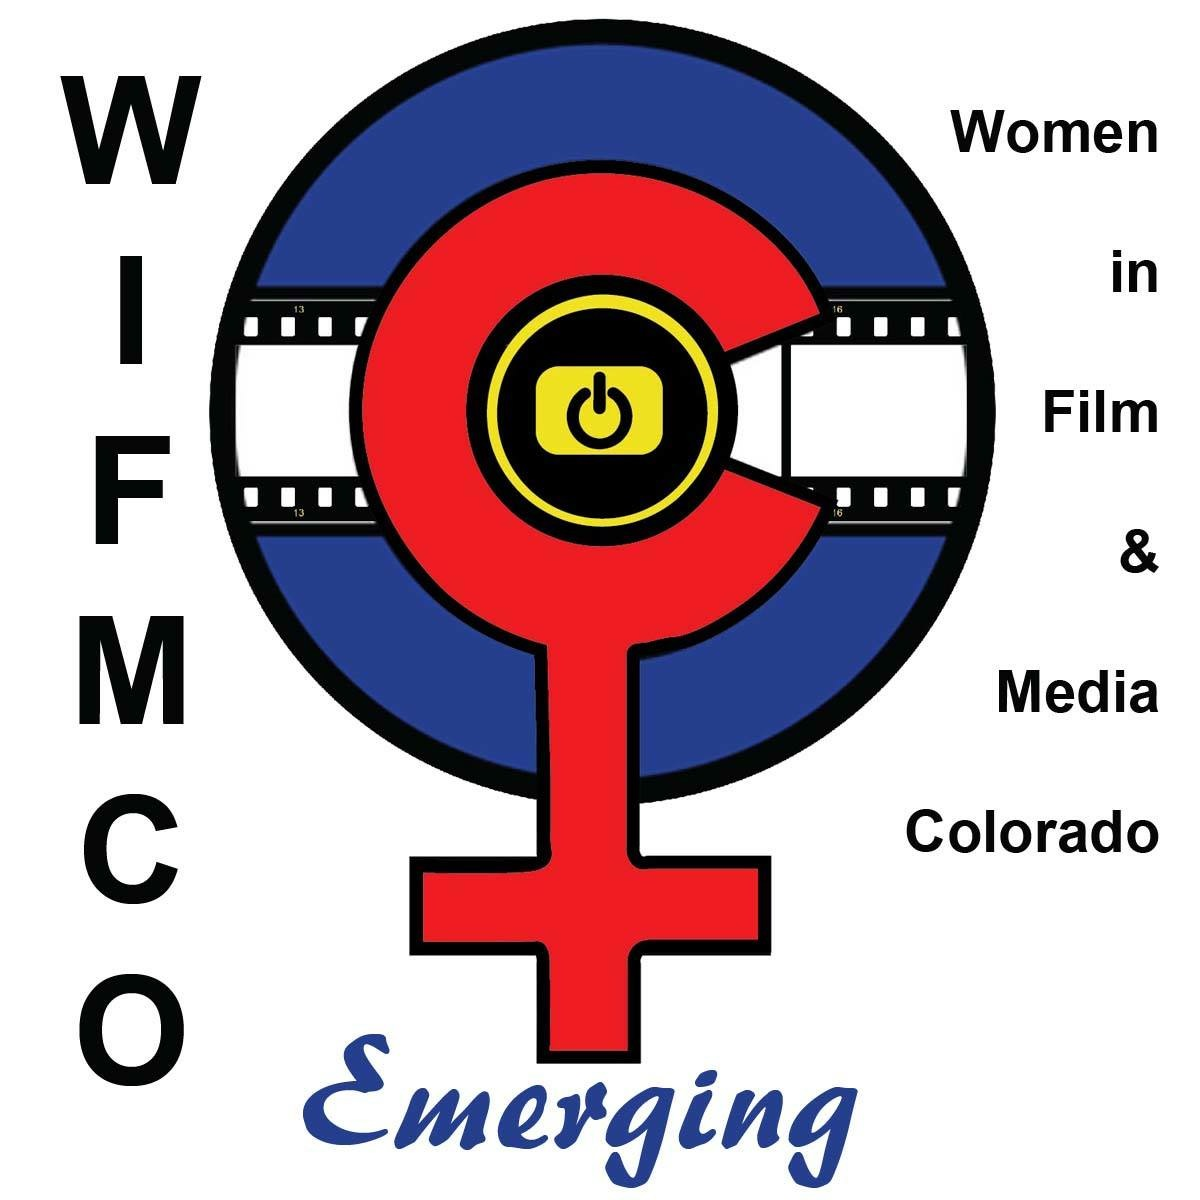 Women In Film & Media Colorado    A place to get plugged into community